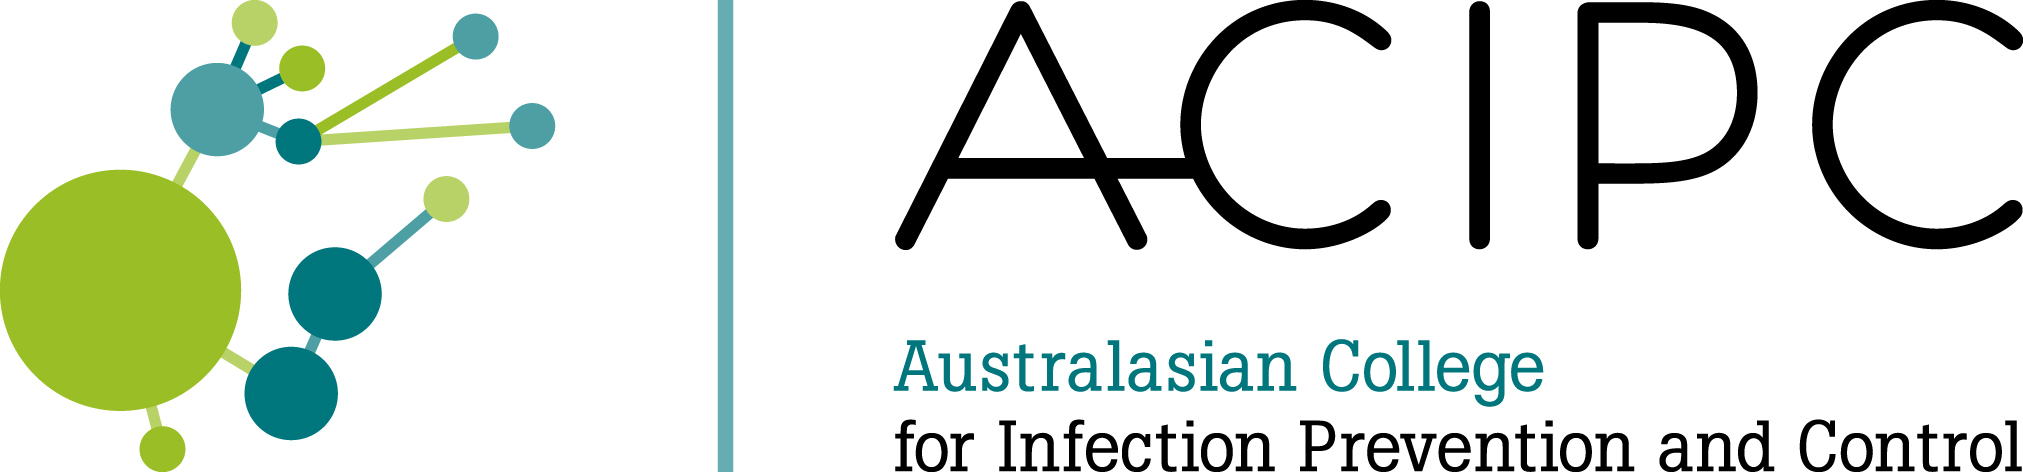 Statement: Hand Hygiene Auditing in Australia